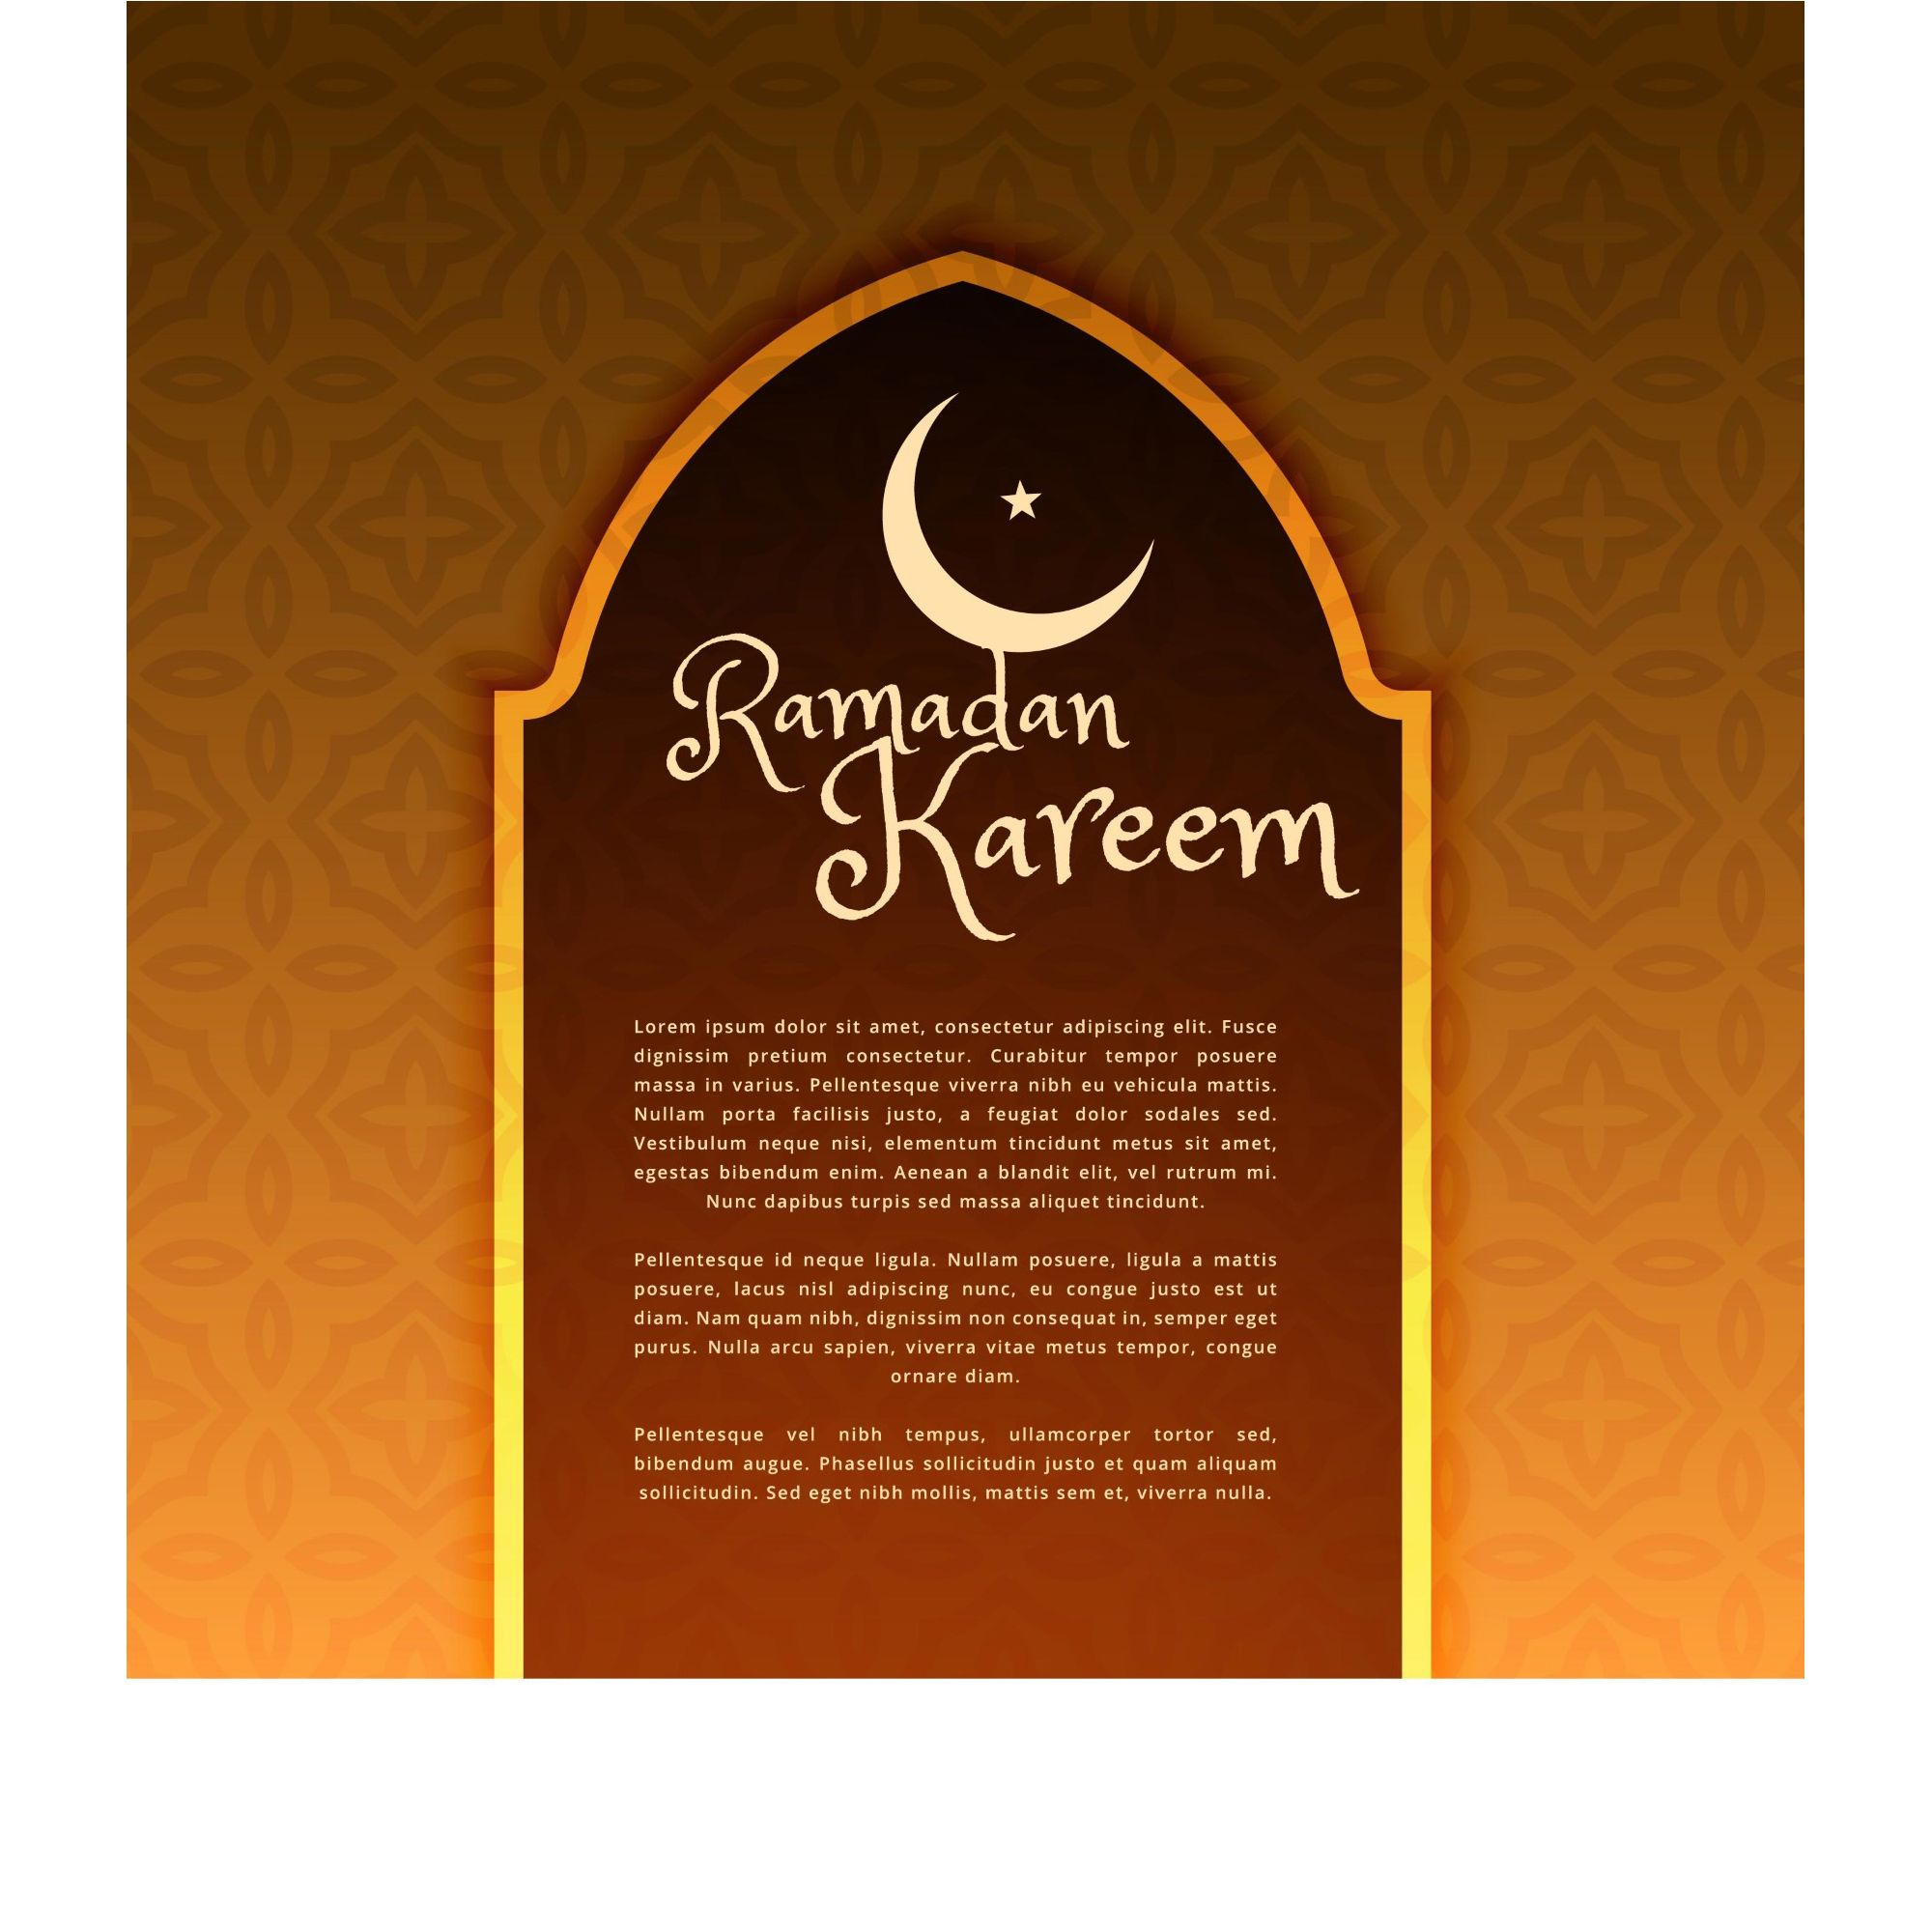 Ramadan kareem celebrating background graphic vector httpwww ramadan kareem celebrating background graphic vector httpcgvector eid greeting cardseid kristyandbryce Choice Image